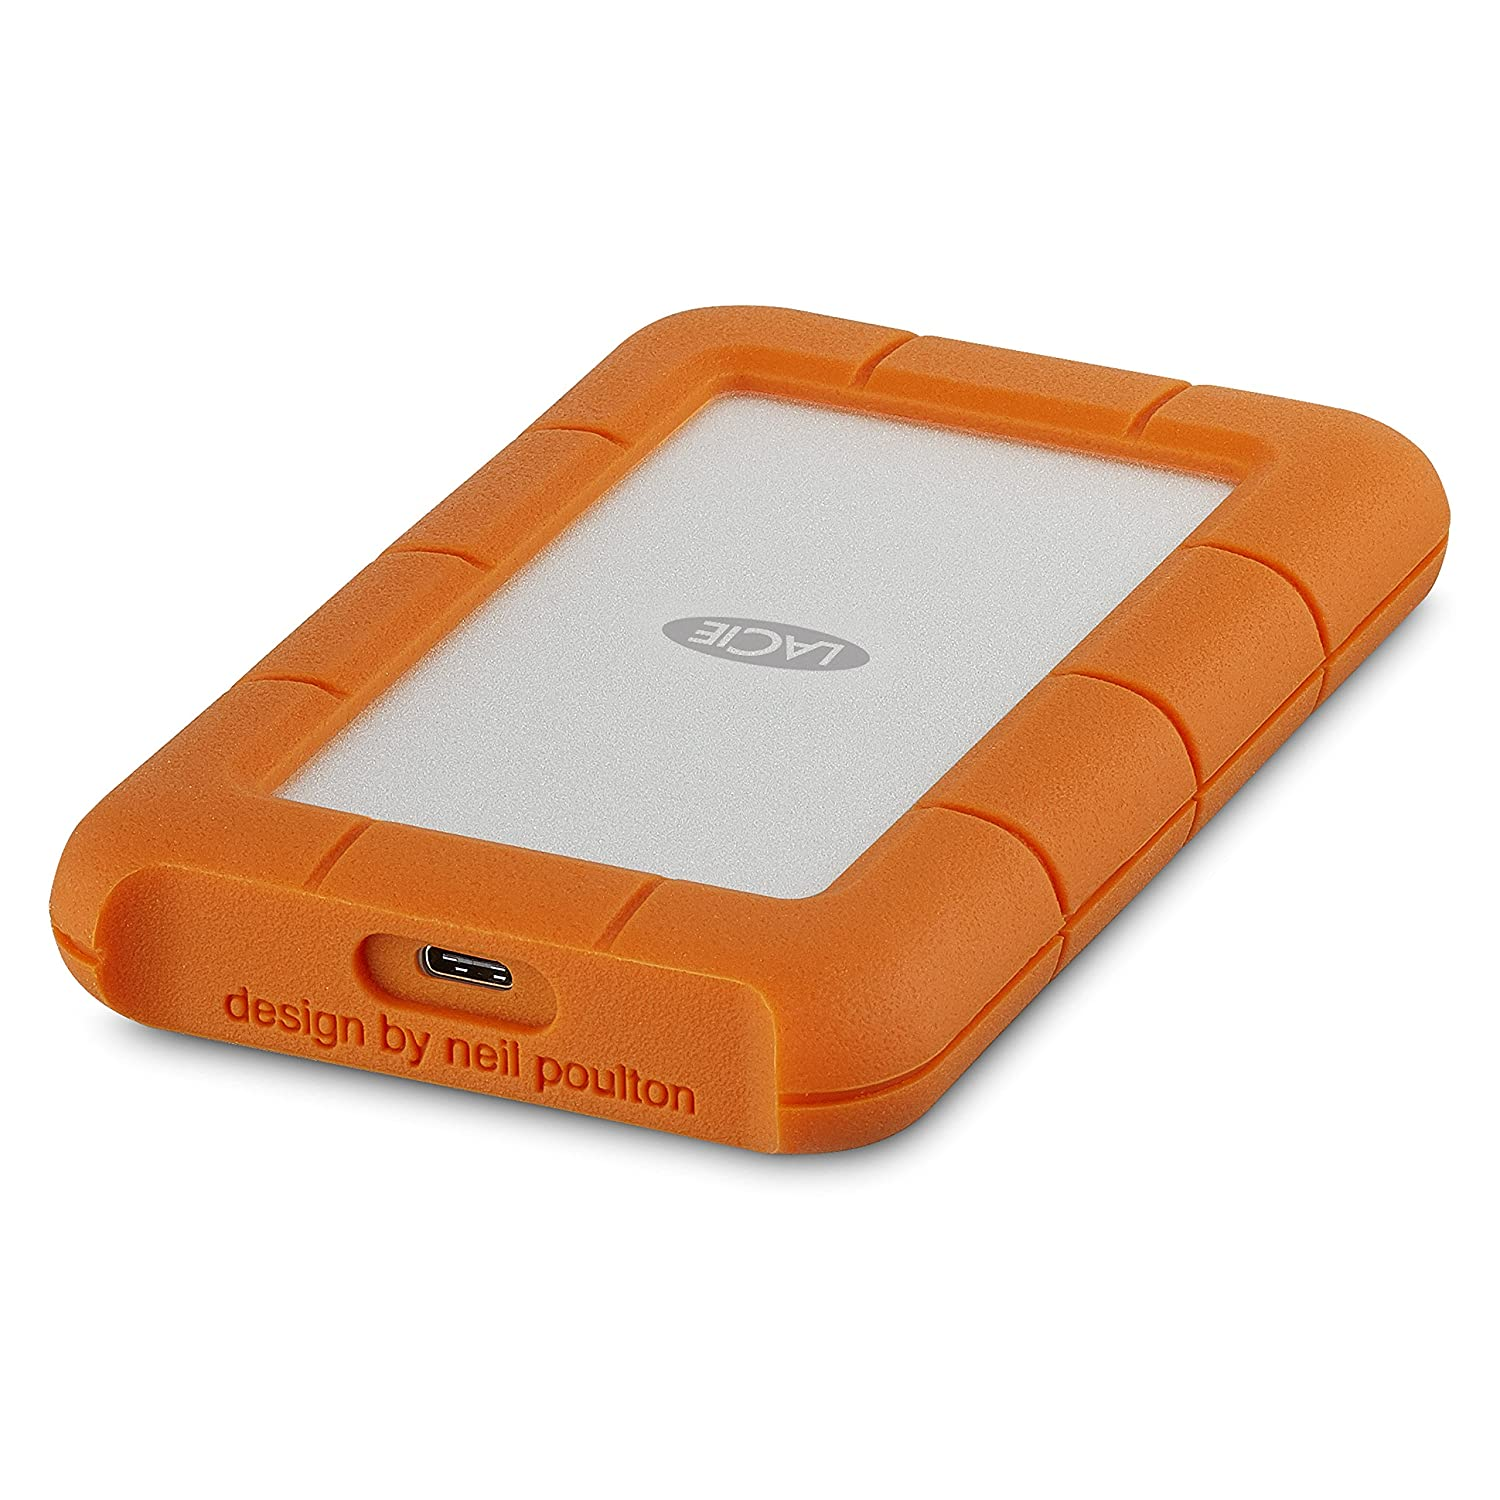 STHT8000800 1 Mo Adobe CC Drop Shock Dust Water Resistant for Mac and PC Computer Desktop Laptop LaCie Rugged Raid Shuttle 8TB External Hard Drive Portable HDD USB-C USB 3.0 Compatible